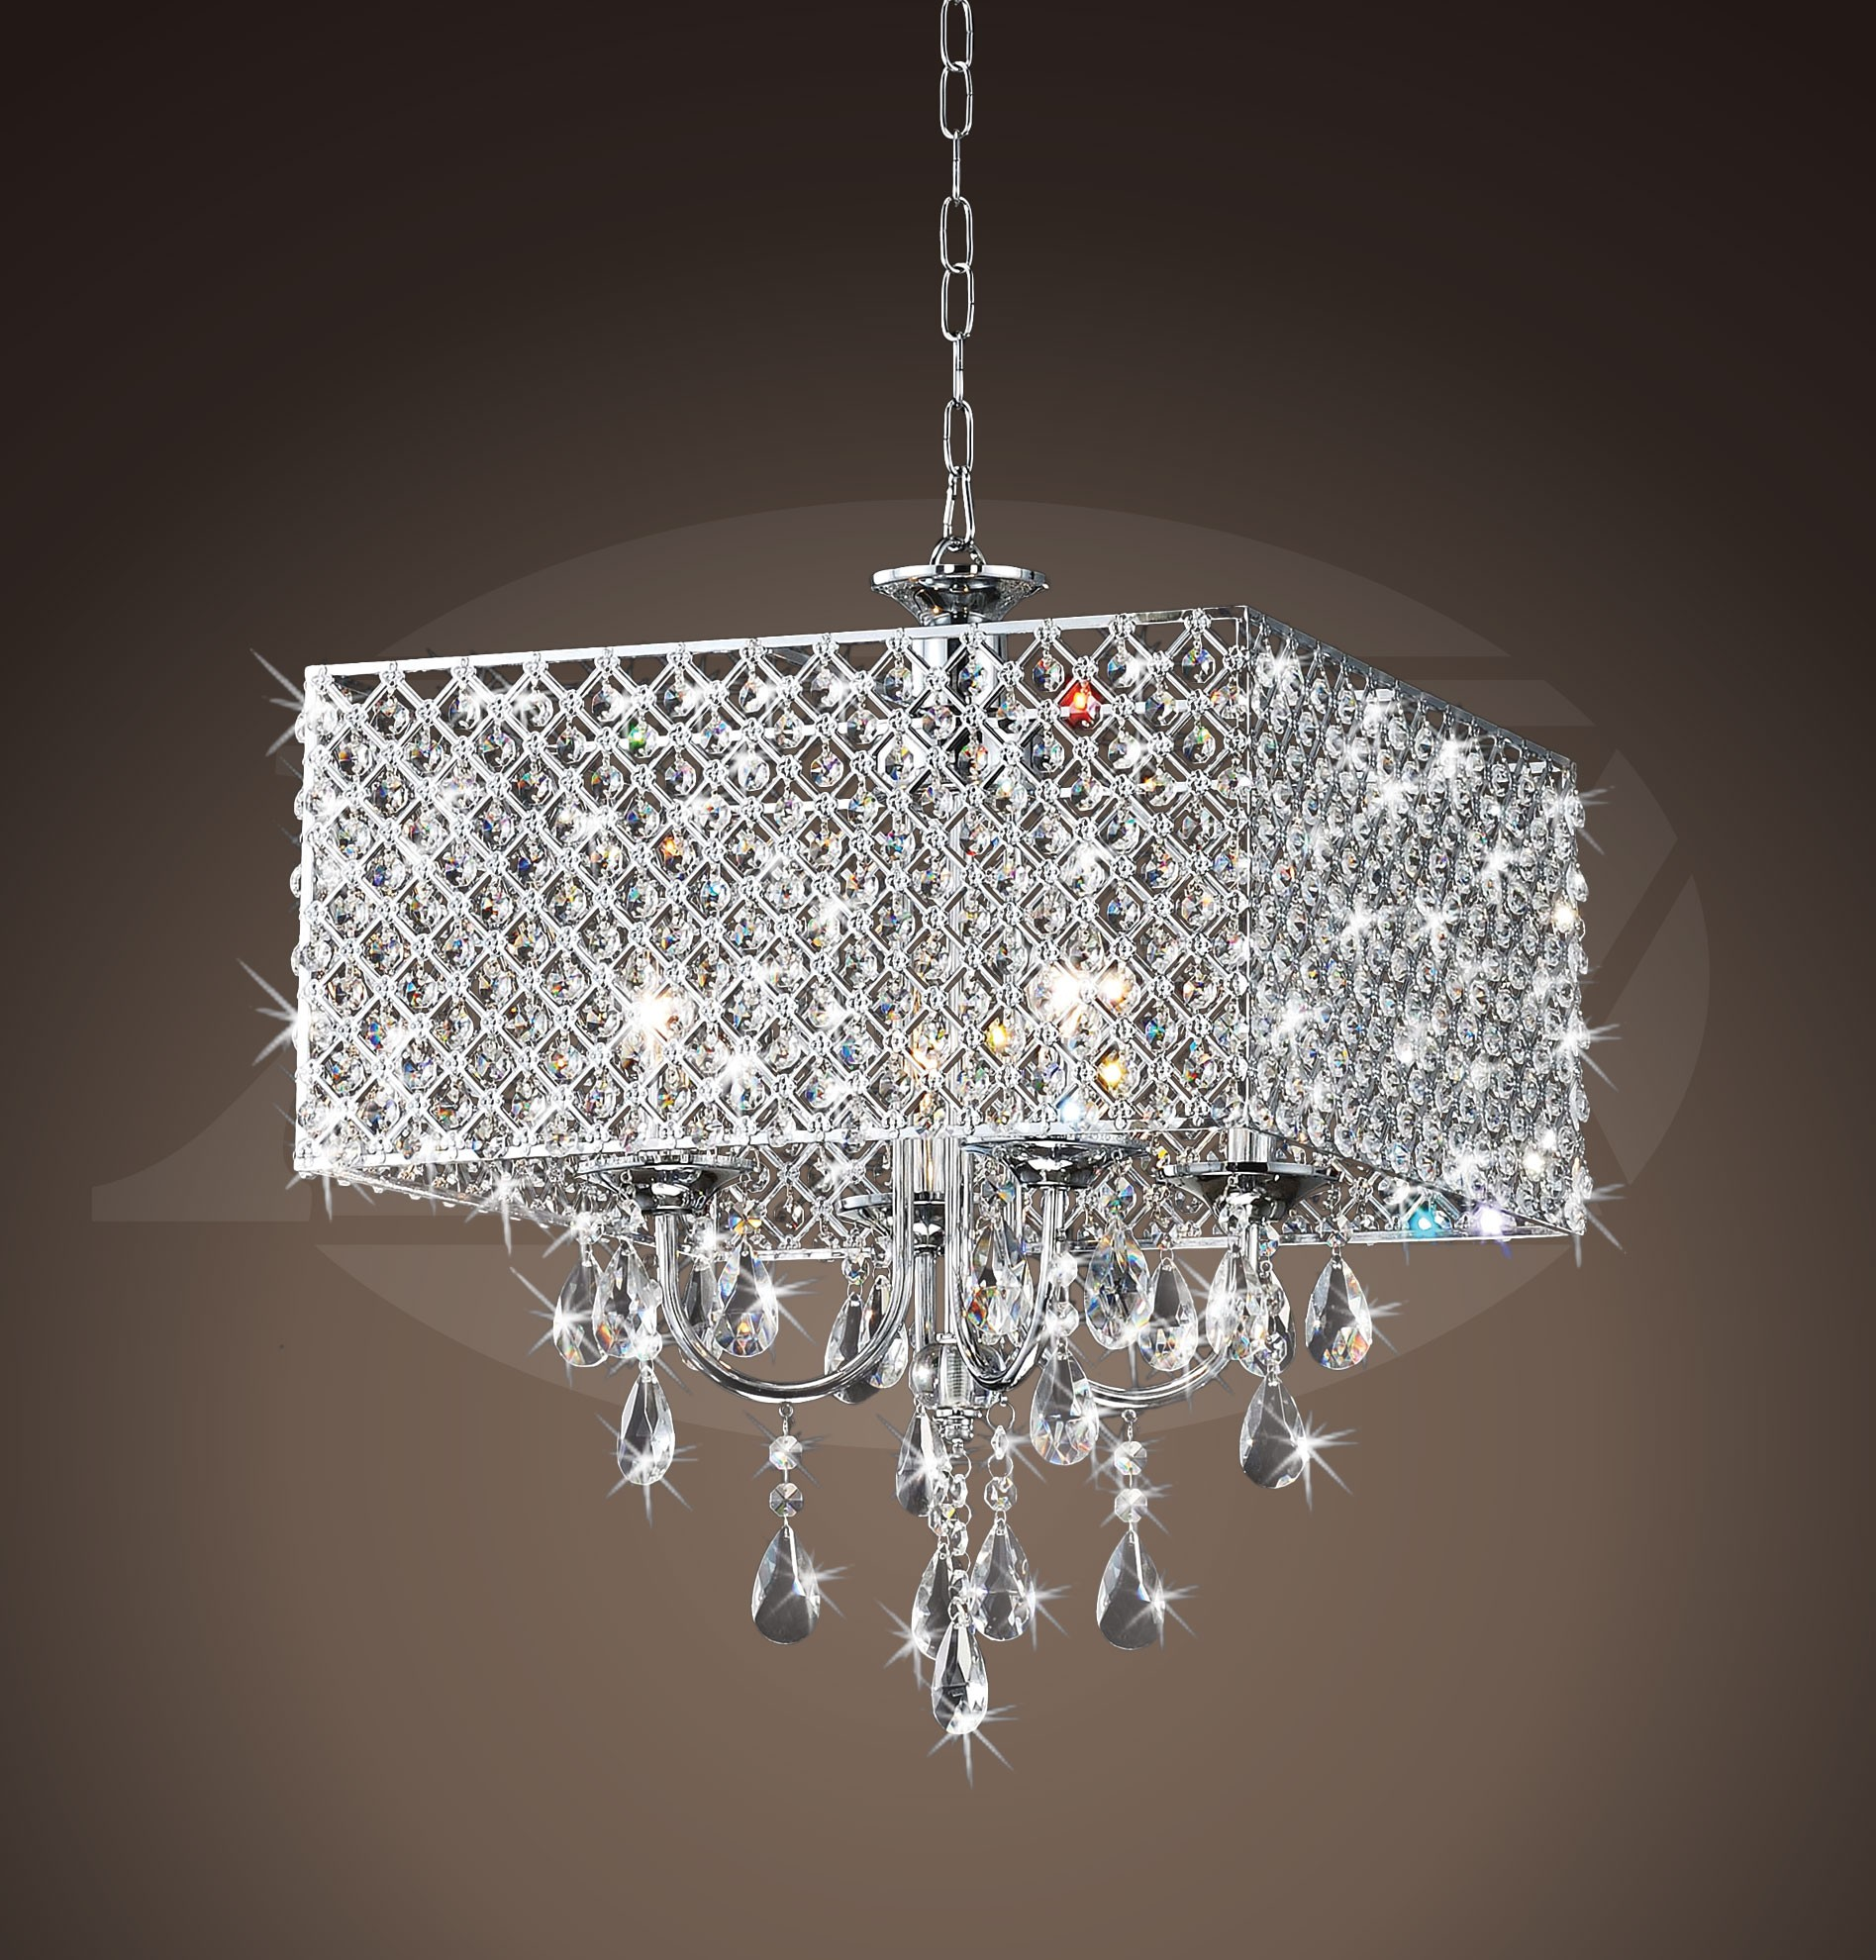 Rosemary elegant crystal chrome 4 light square chandelier 16h x rosemary elegant crystal chrome 4 light square chandelier 16h x 17 arubaitofo Choice Image